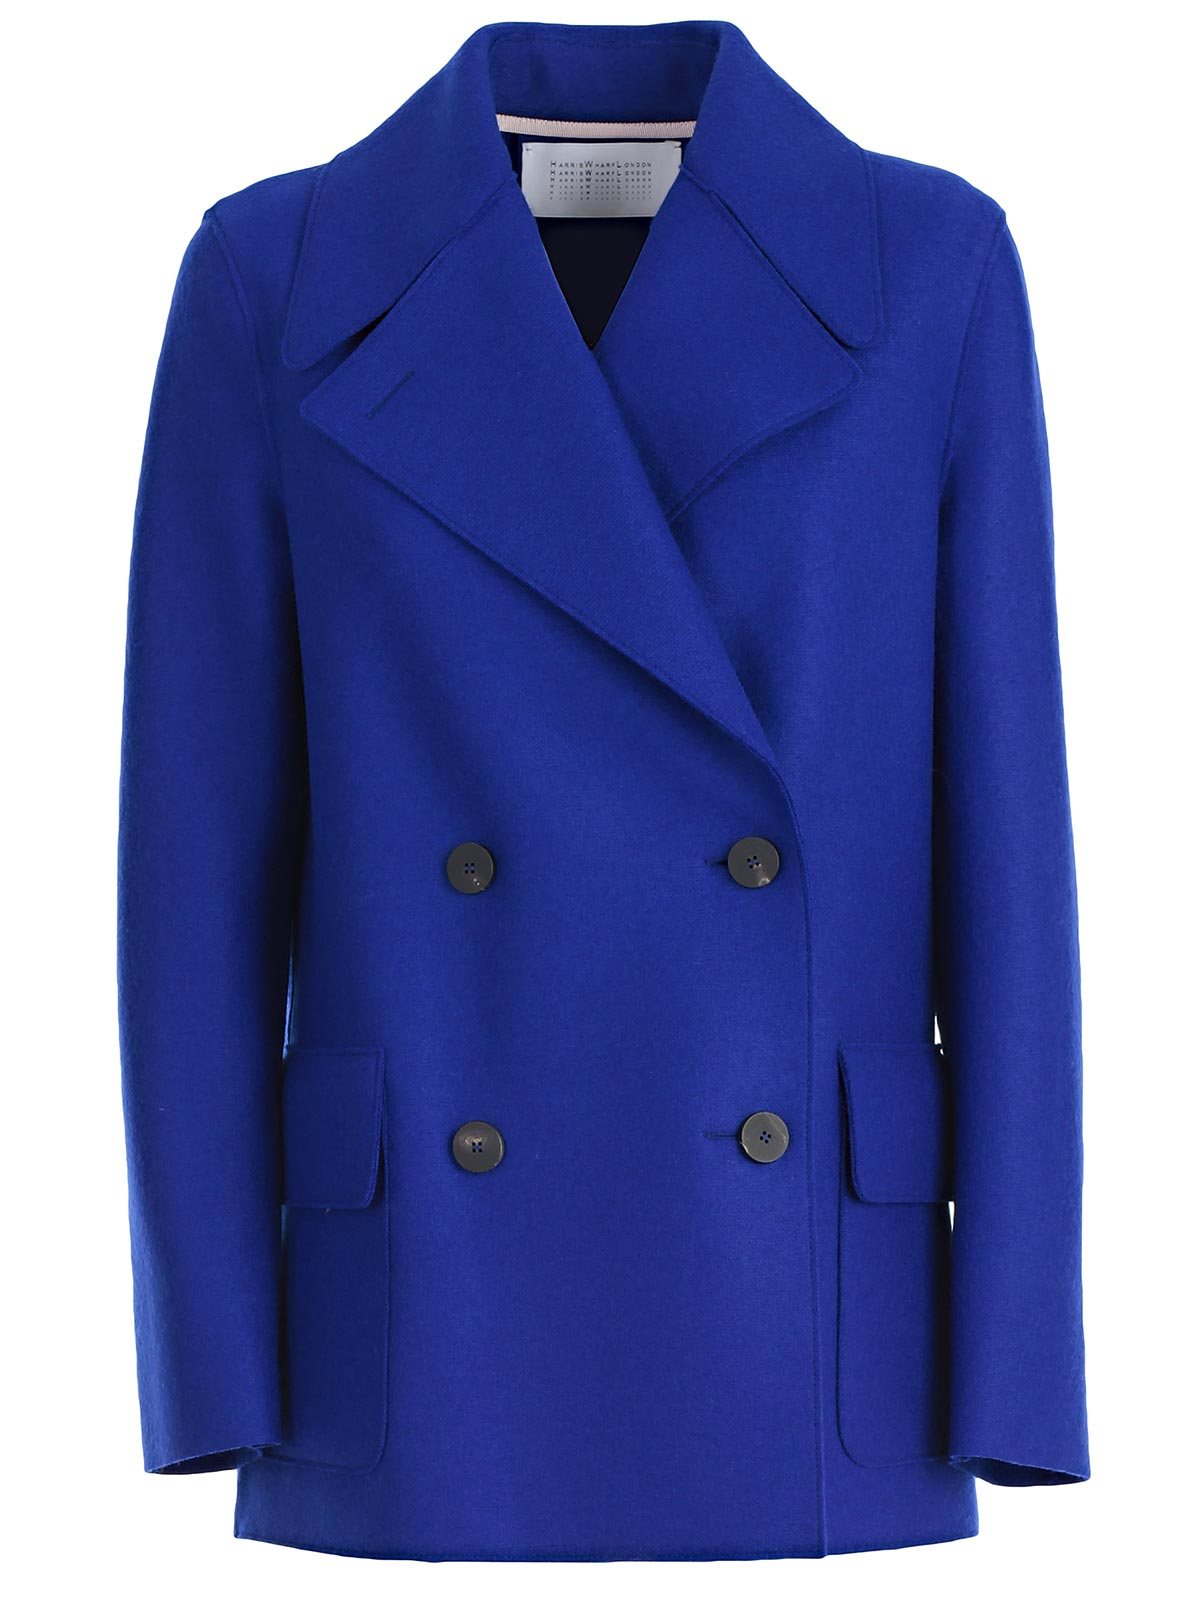 Picture of Harris Wharf London Double Breasted & Peacoat